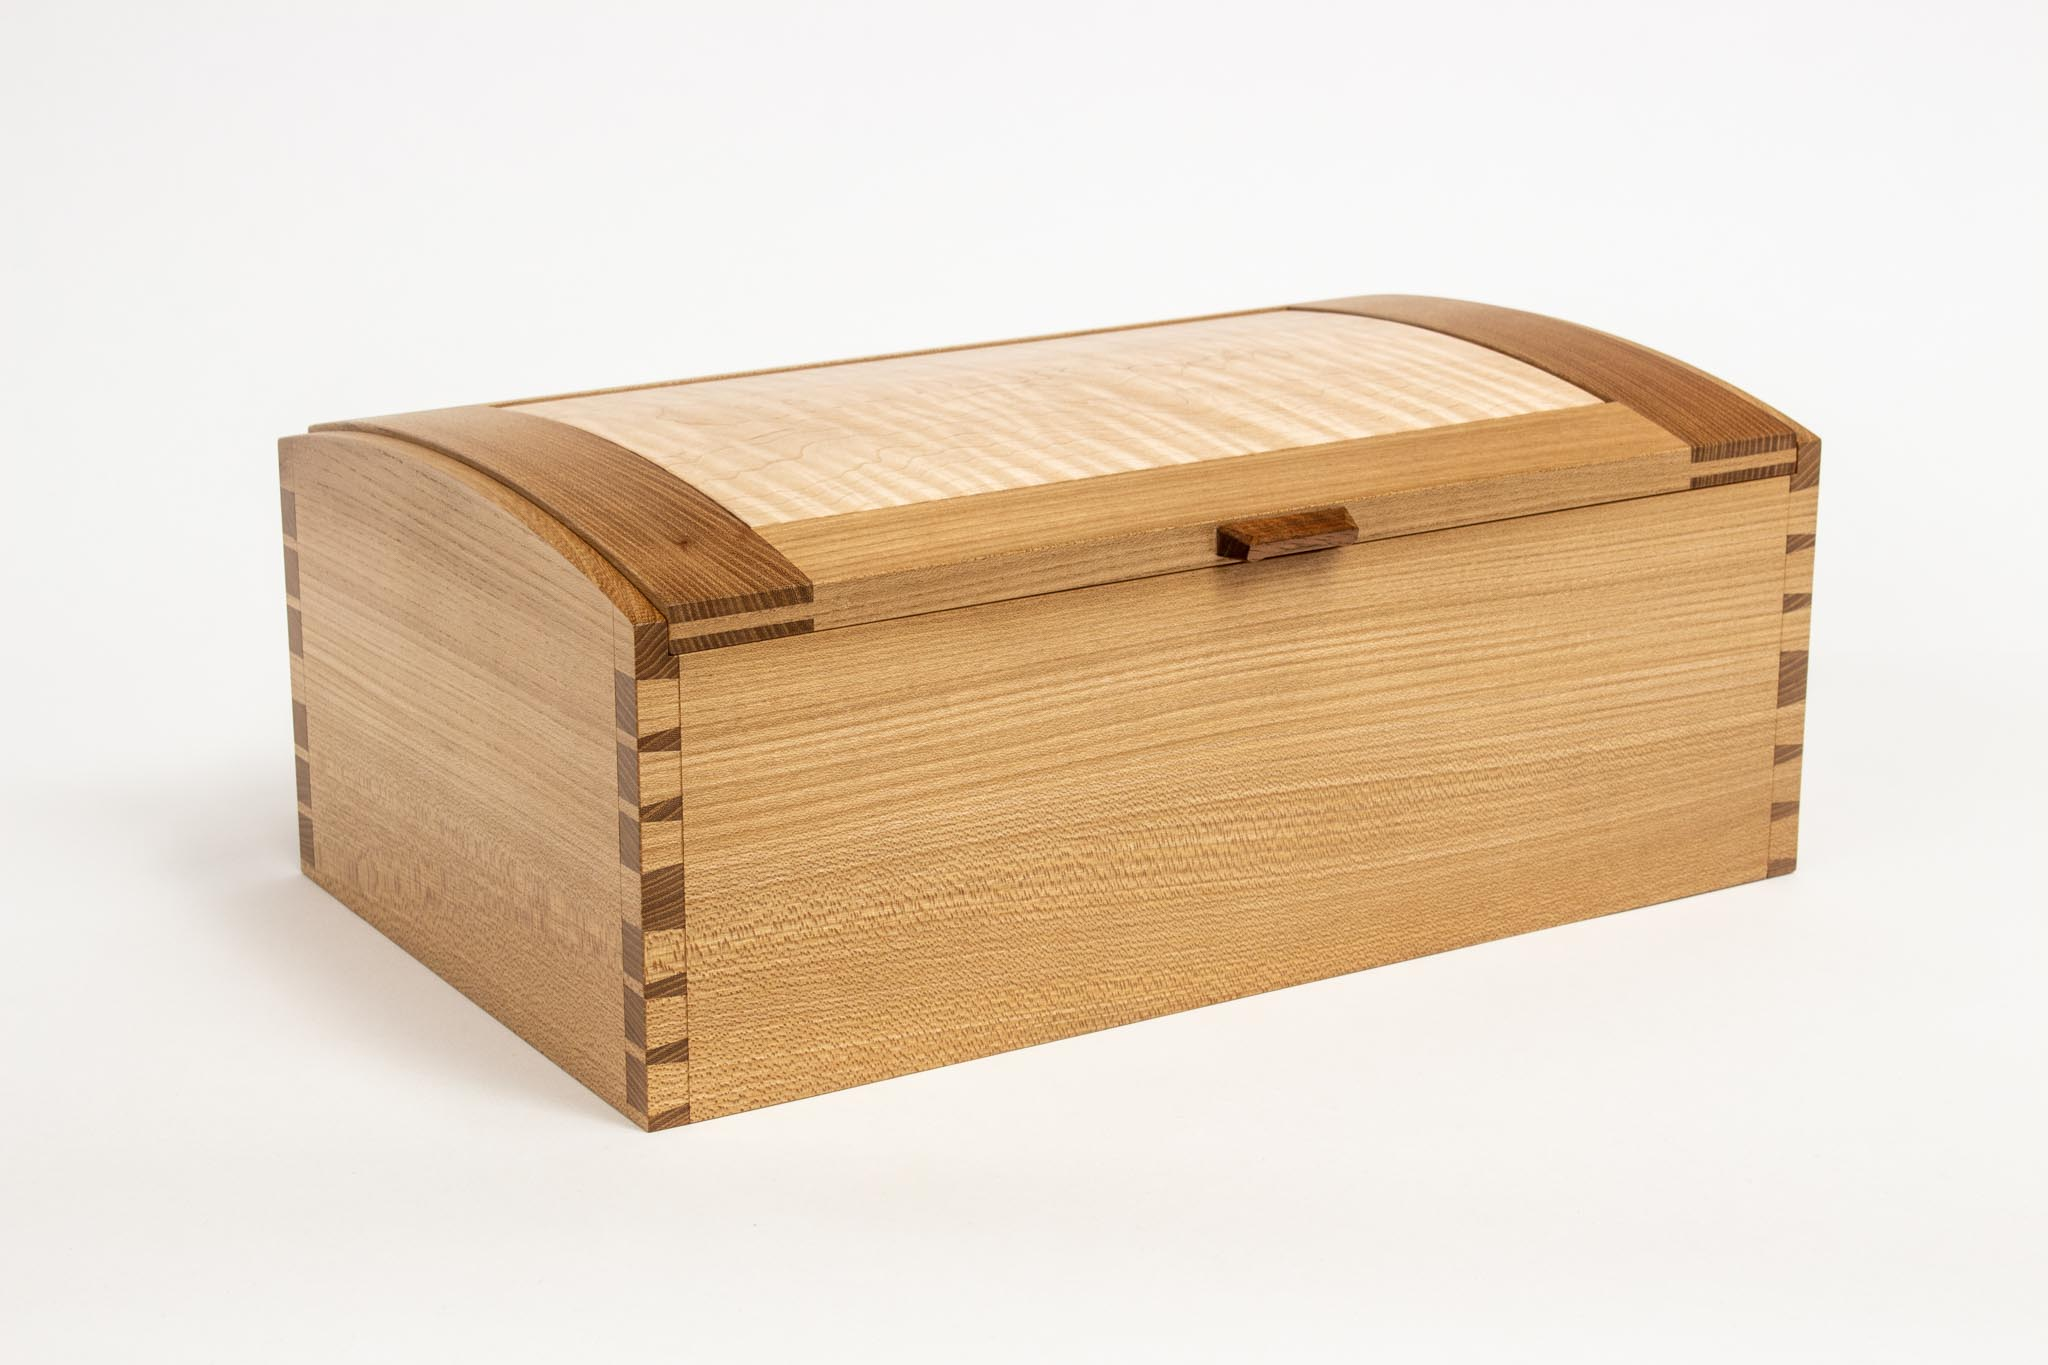 Keoni dovetail box